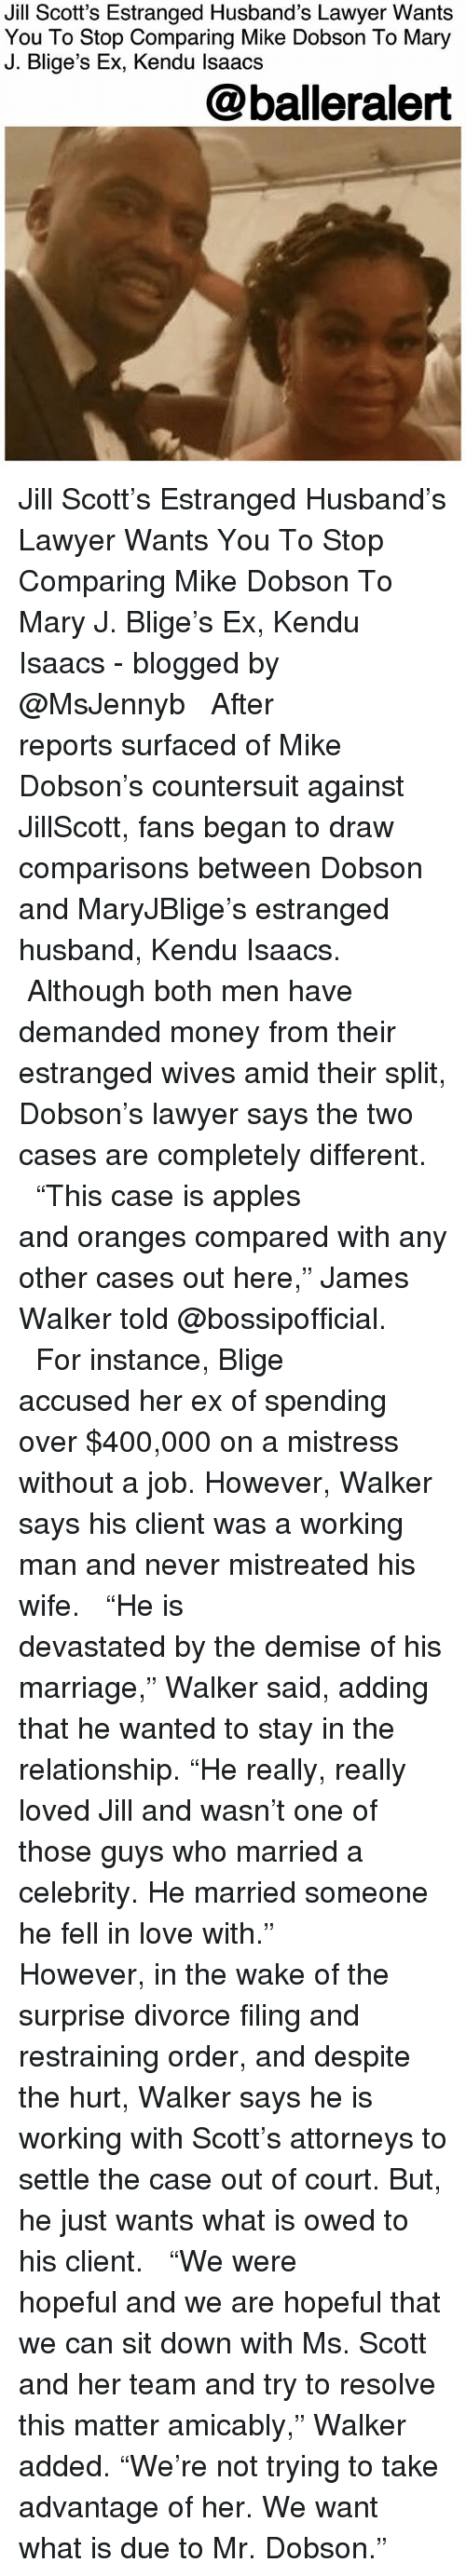 """Lawyer, Love, and Marriage: Jill Scott's Estranged Husband's Lawyer Wants  You To Stop Comparing Mike Dobson To Mary  J. Blige's Ex, Kendu lsaacs  @balleralert Jill Scott's Estranged Husband's Lawyer Wants You To Stop Comparing Mike Dobson To Mary J. Blige's Ex, Kendu Isaacs - blogged by @MsJennyb ⠀⠀⠀⠀⠀⠀⠀ ⠀⠀⠀⠀⠀⠀⠀ After reports surfaced of Mike Dobson's countersuit against JillScott, fans began to draw comparisons between Dobson and MaryJBlige's estranged husband, Kendu Isaacs. ⠀⠀⠀⠀⠀⠀⠀ ⠀⠀⠀⠀⠀⠀⠀ Although both men have demanded money from their estranged wives amid their split, Dobson's lawyer says the two cases are completely different. ⠀⠀⠀⠀⠀⠀⠀ ⠀⠀⠀⠀⠀⠀⠀ """"This case is apples and oranges compared with any other cases out here,"""" James Walker told @bossipofficial. ⠀⠀⠀⠀⠀⠀⠀ ⠀⠀⠀⠀⠀⠀⠀ For instance, Blige accused her ex of spending over $400,000 on a mistress without a job. However, Walker says his client was a working man and never mistreated his wife. ⠀⠀⠀⠀⠀⠀⠀ ⠀⠀⠀⠀⠀⠀⠀ """"He is devastated by the demise of his marriage,"""" Walker said, adding that he wanted to stay in the relationship. """"He really, really loved Jill and wasn't one of those guys who married a celebrity. He married someone he fell in love with."""" ⠀⠀⠀⠀⠀⠀⠀ ⠀⠀⠀⠀⠀⠀⠀ However, in the wake of the surprise divorce filing and restraining order, and despite the hurt, Walker says he is working with Scott's attorneys to settle the case out of court. But, he just wants what is owed to his client. ⠀⠀⠀⠀⠀⠀⠀ ⠀⠀⠀⠀⠀⠀⠀ """"We were hopeful and we are hopeful that we can sit down with Ms. Scott and her team and try to resolve this matter amicably,"""" Walker added. """"We're not trying to take advantage of her. We want what is due to Mr. Dobson."""""""